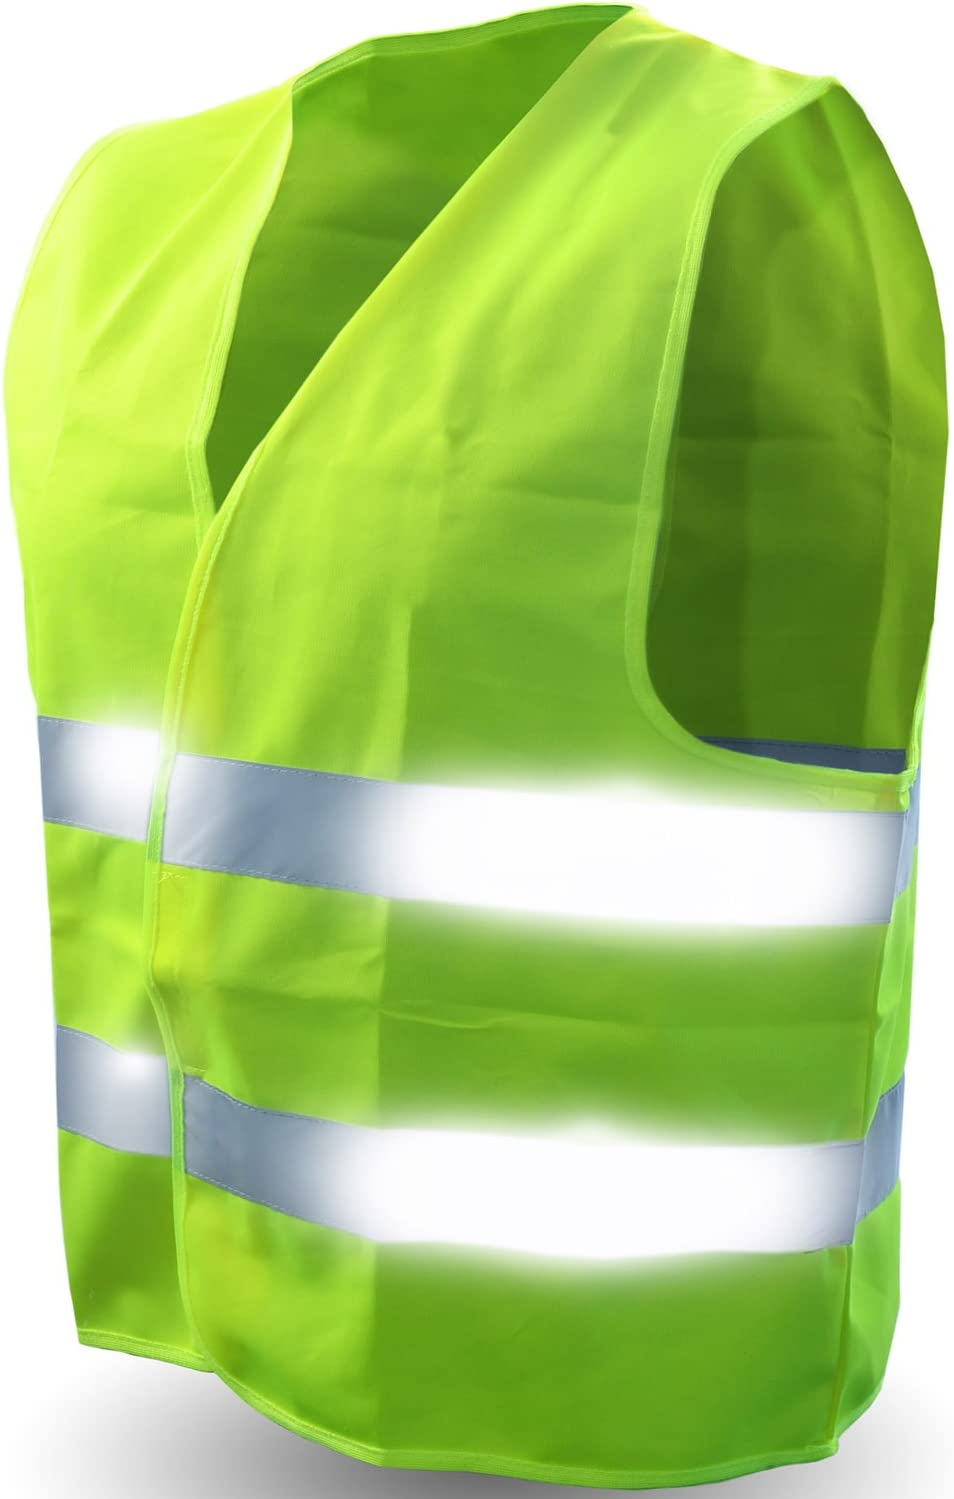 Safety Reflective Vest ULTRA Gorgeous HIGH YELLOW NEON Deluxe VISIBILITY BRIGHT